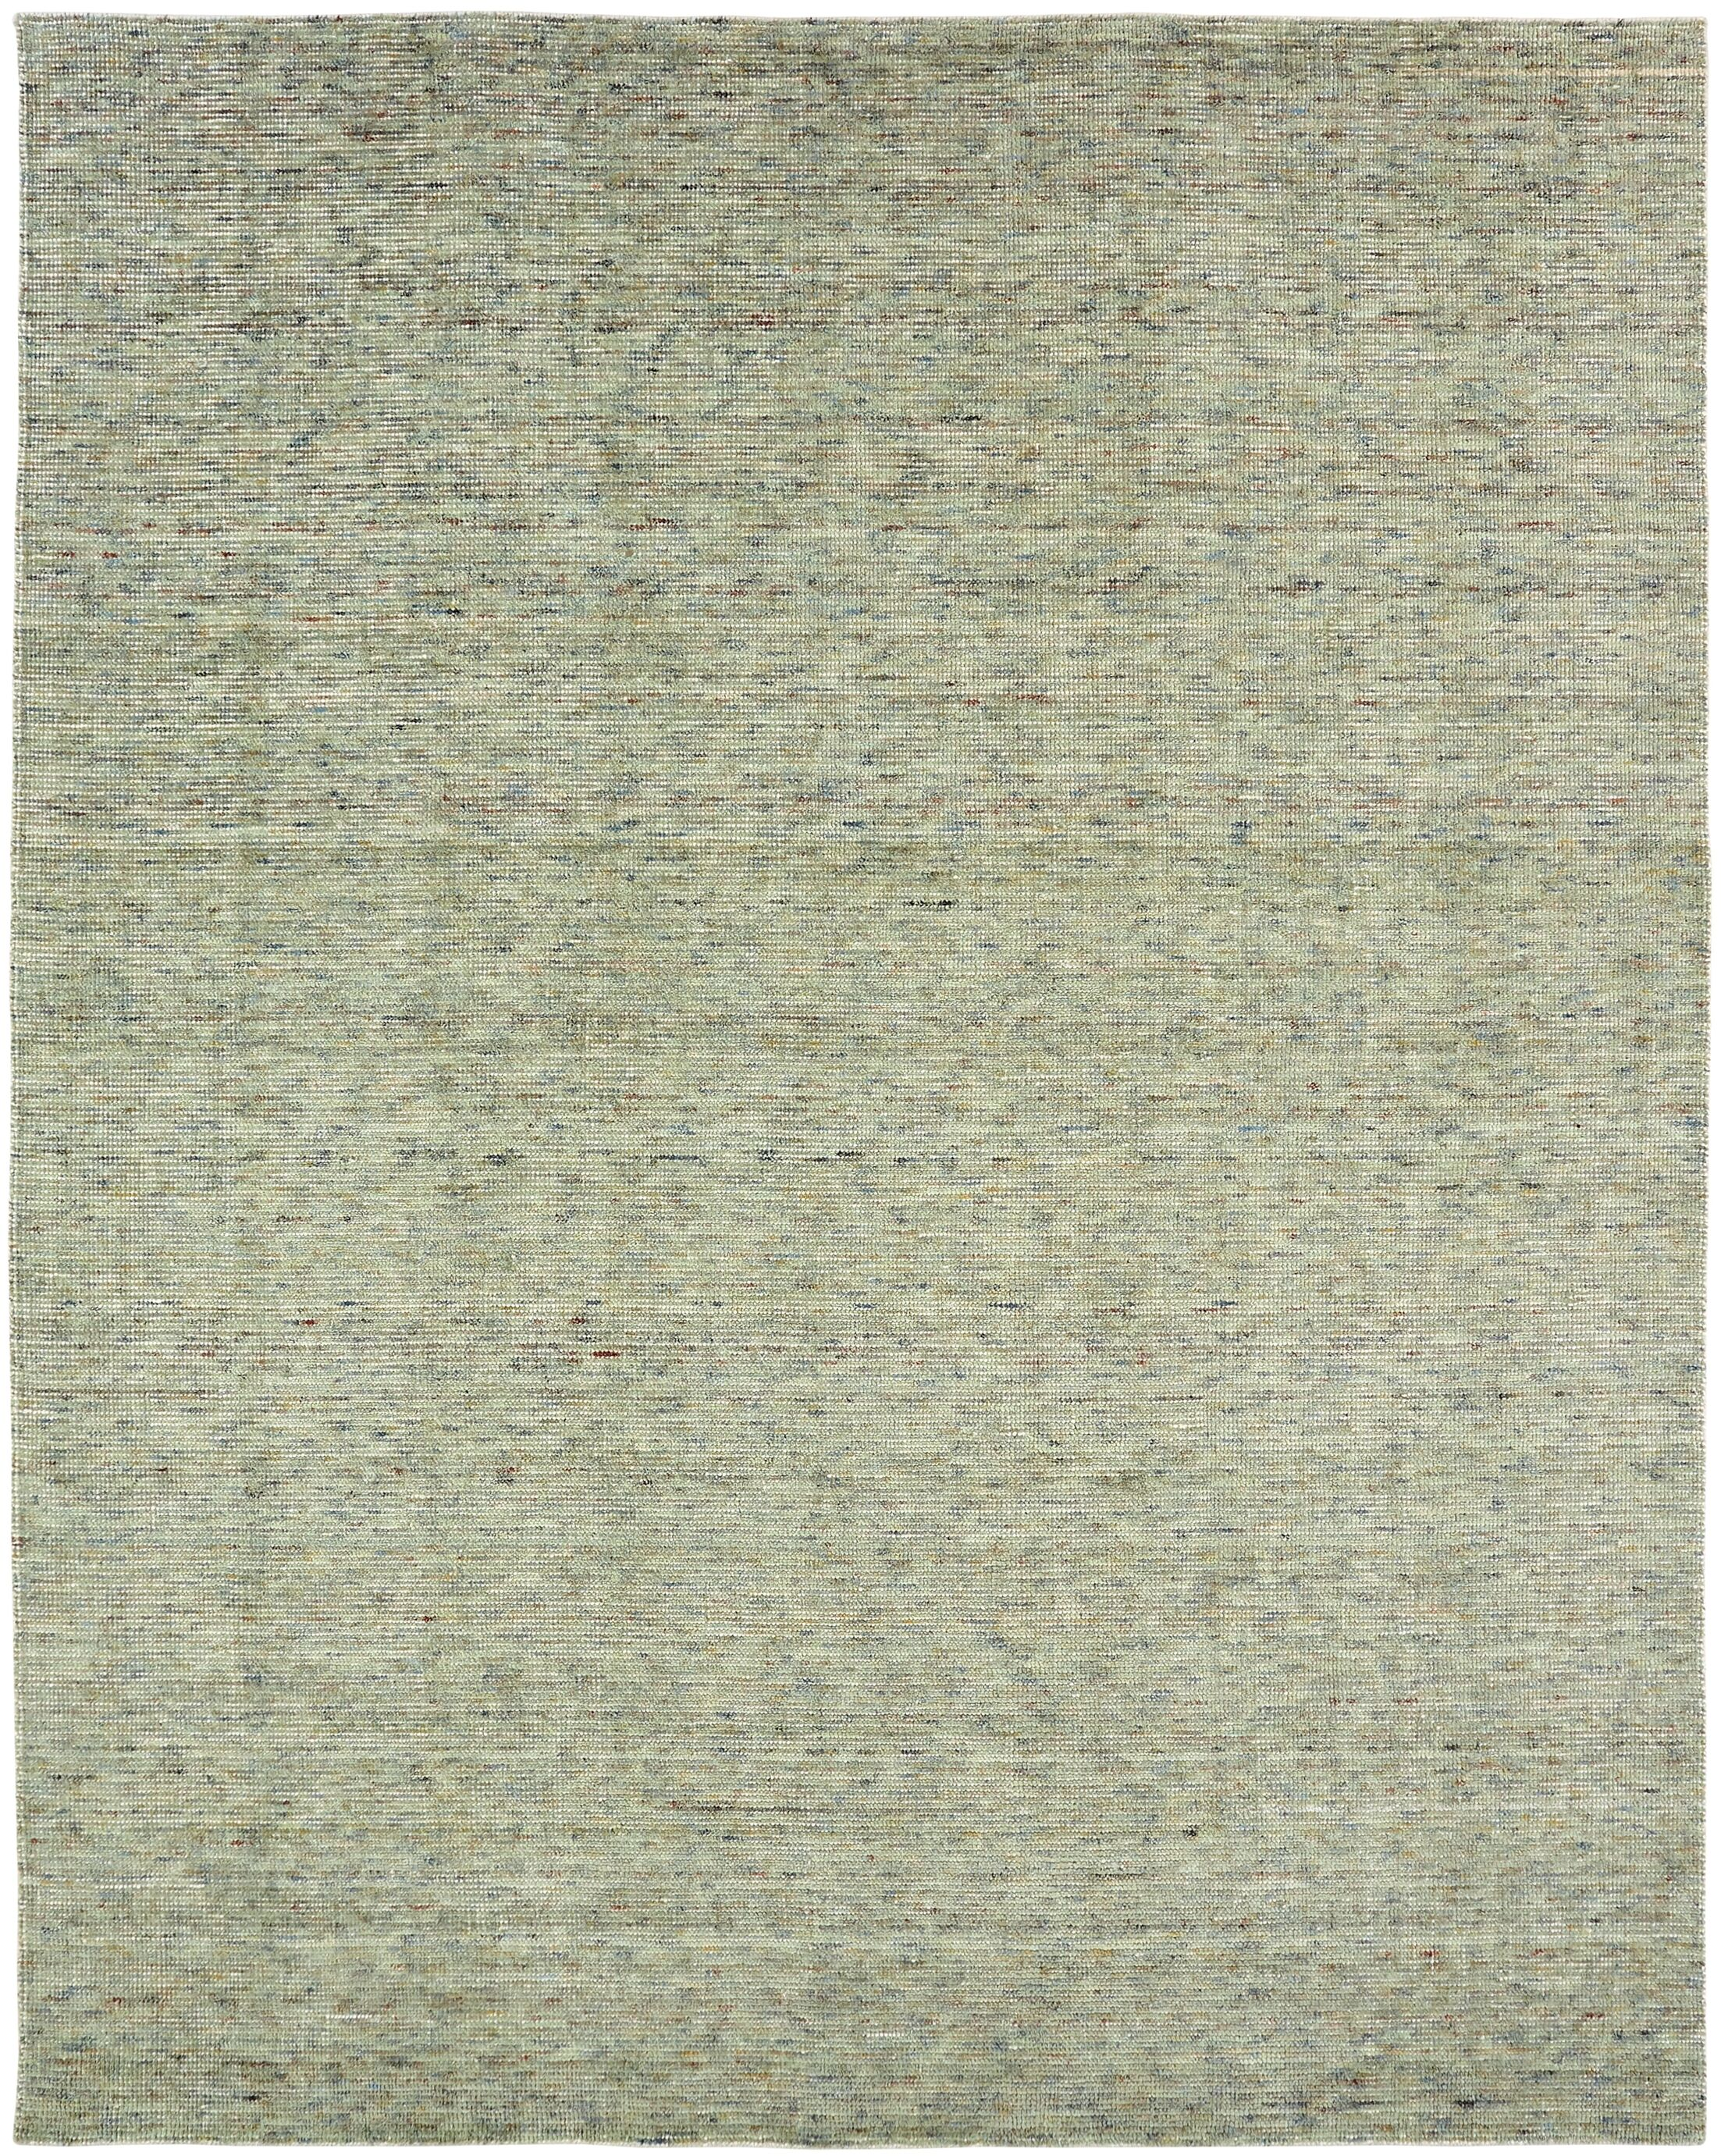 Beckstead Hand-Hooked Green Area Rug Rug Size: Rectangle 8'6